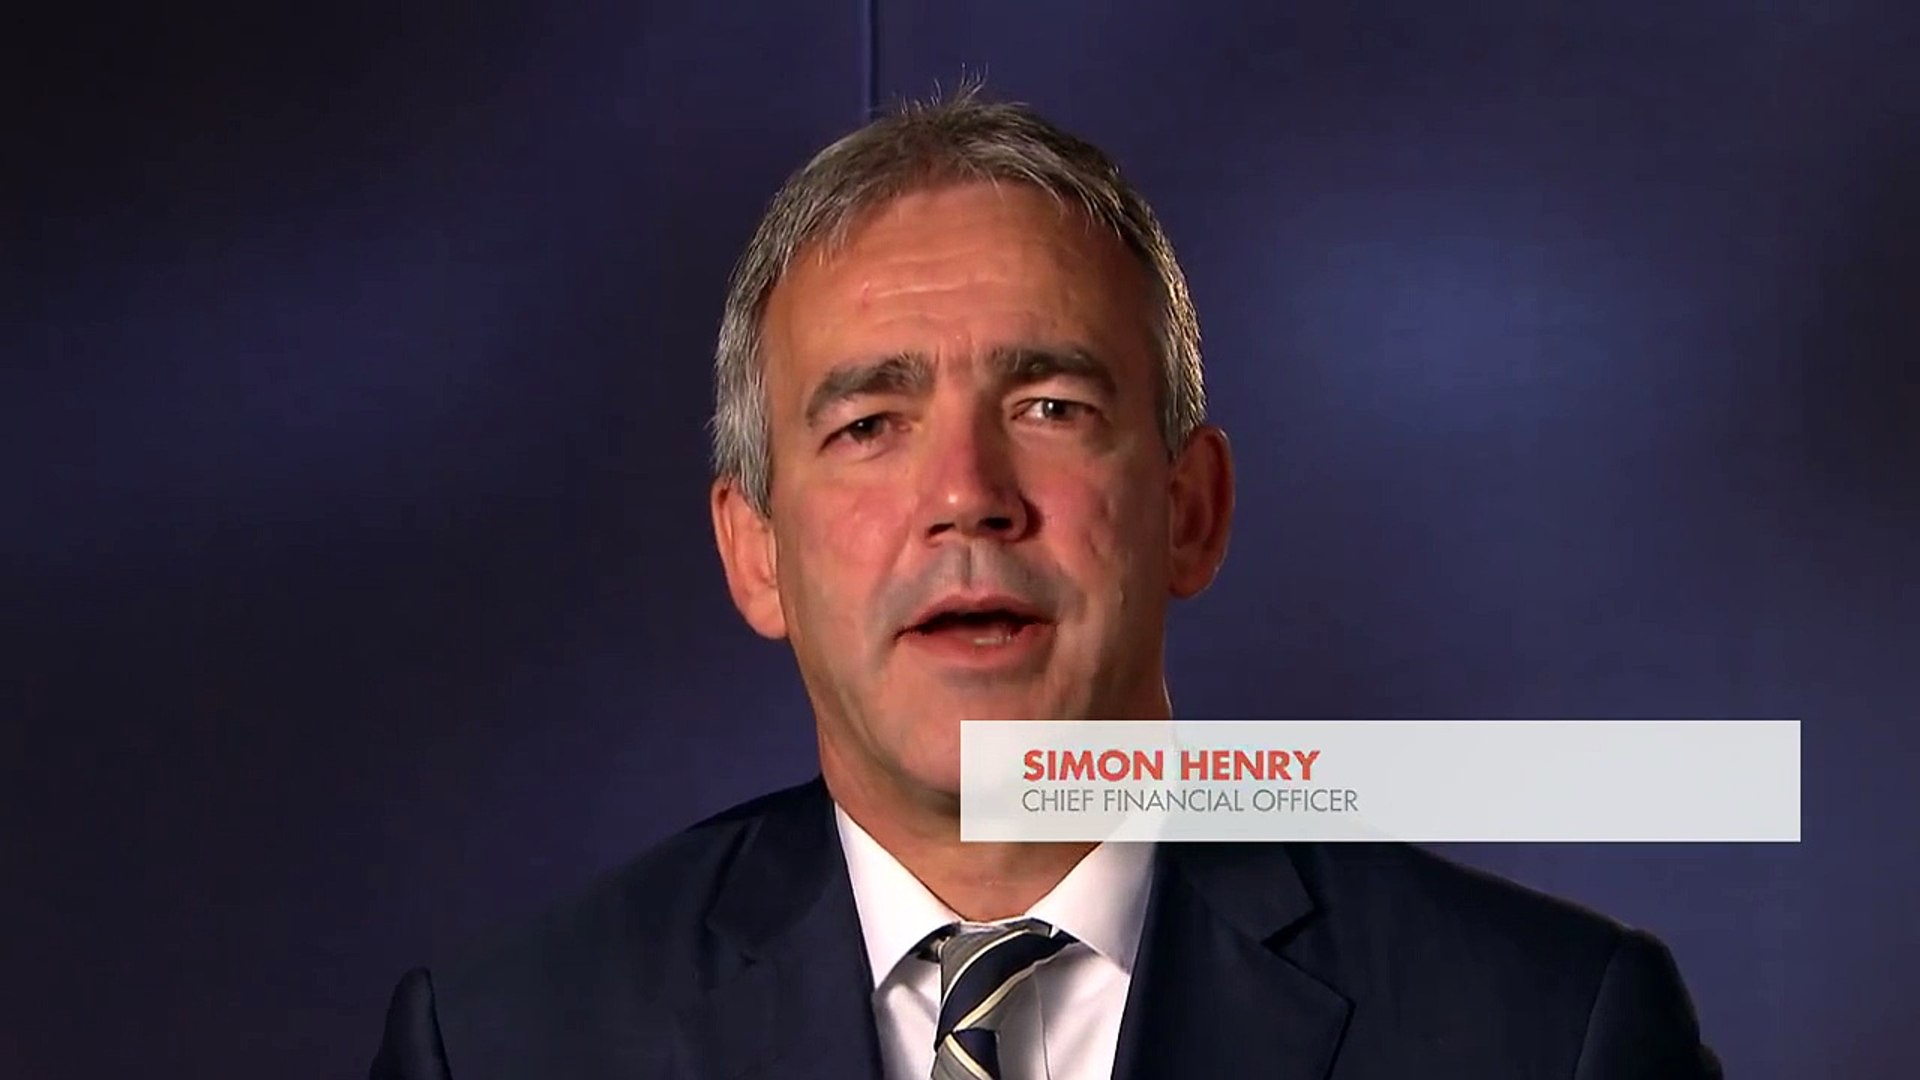 Simon Henry, CFO of Shell, comments on the Q1 2012 results